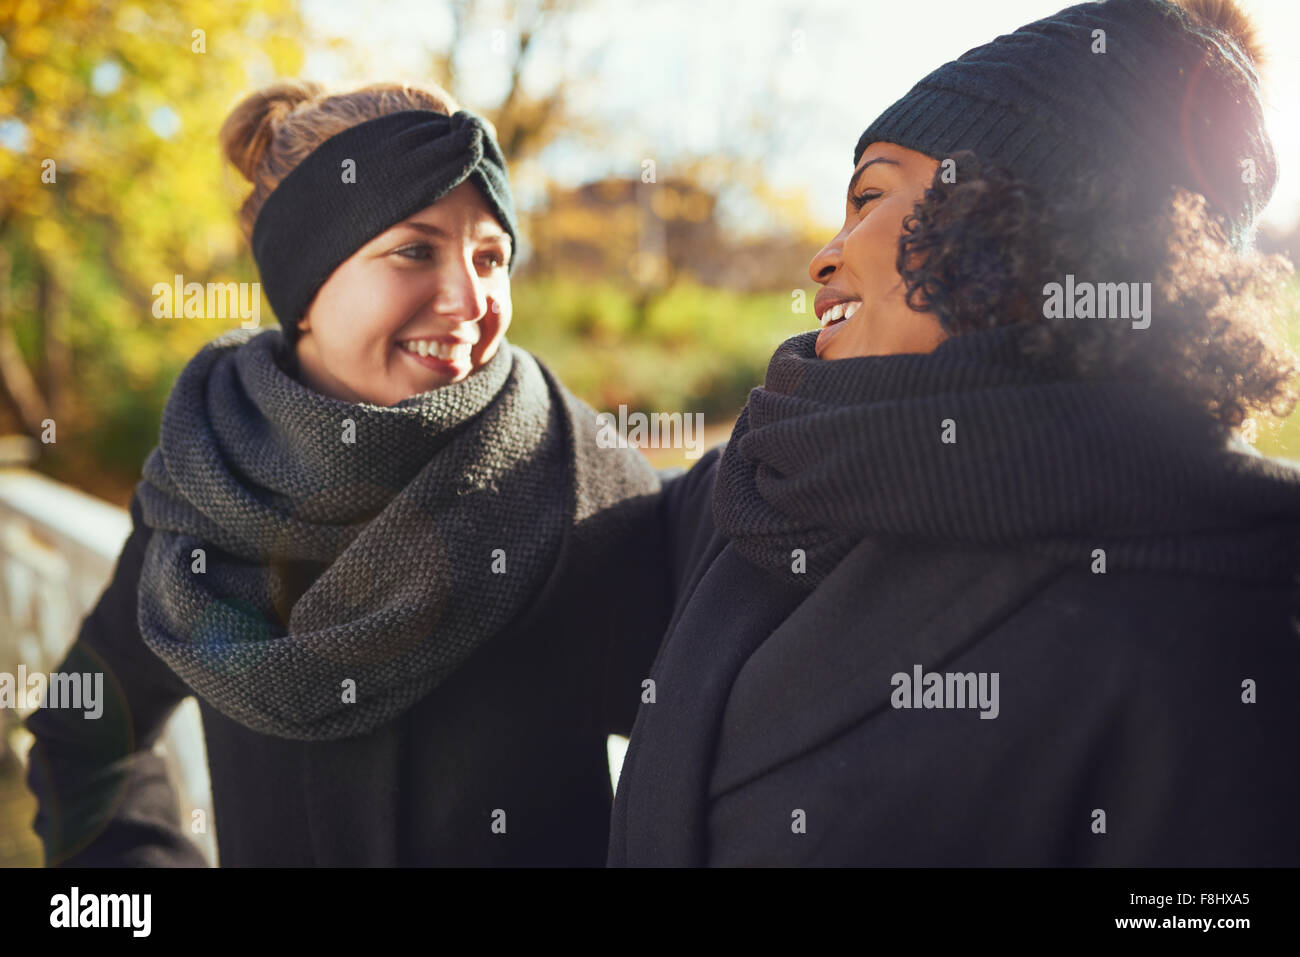 Two girlfriends looking at each other and smiling while standing in autumnal park - Stock Image